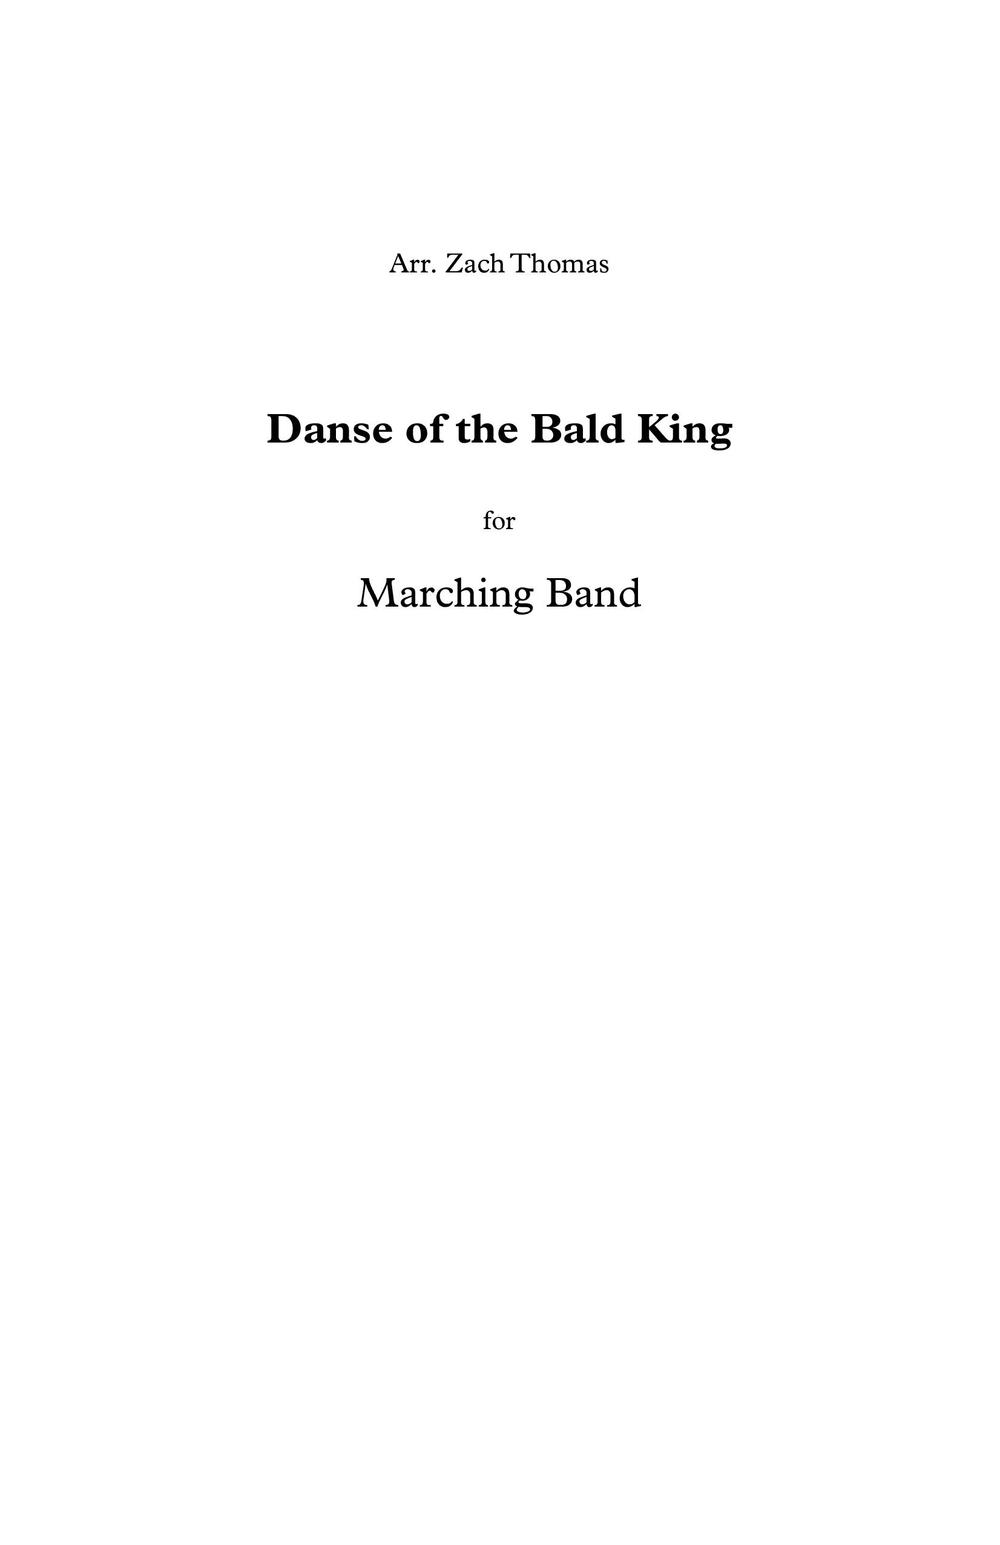 Danse-of-the-Bald-King-Pt-1-Cover